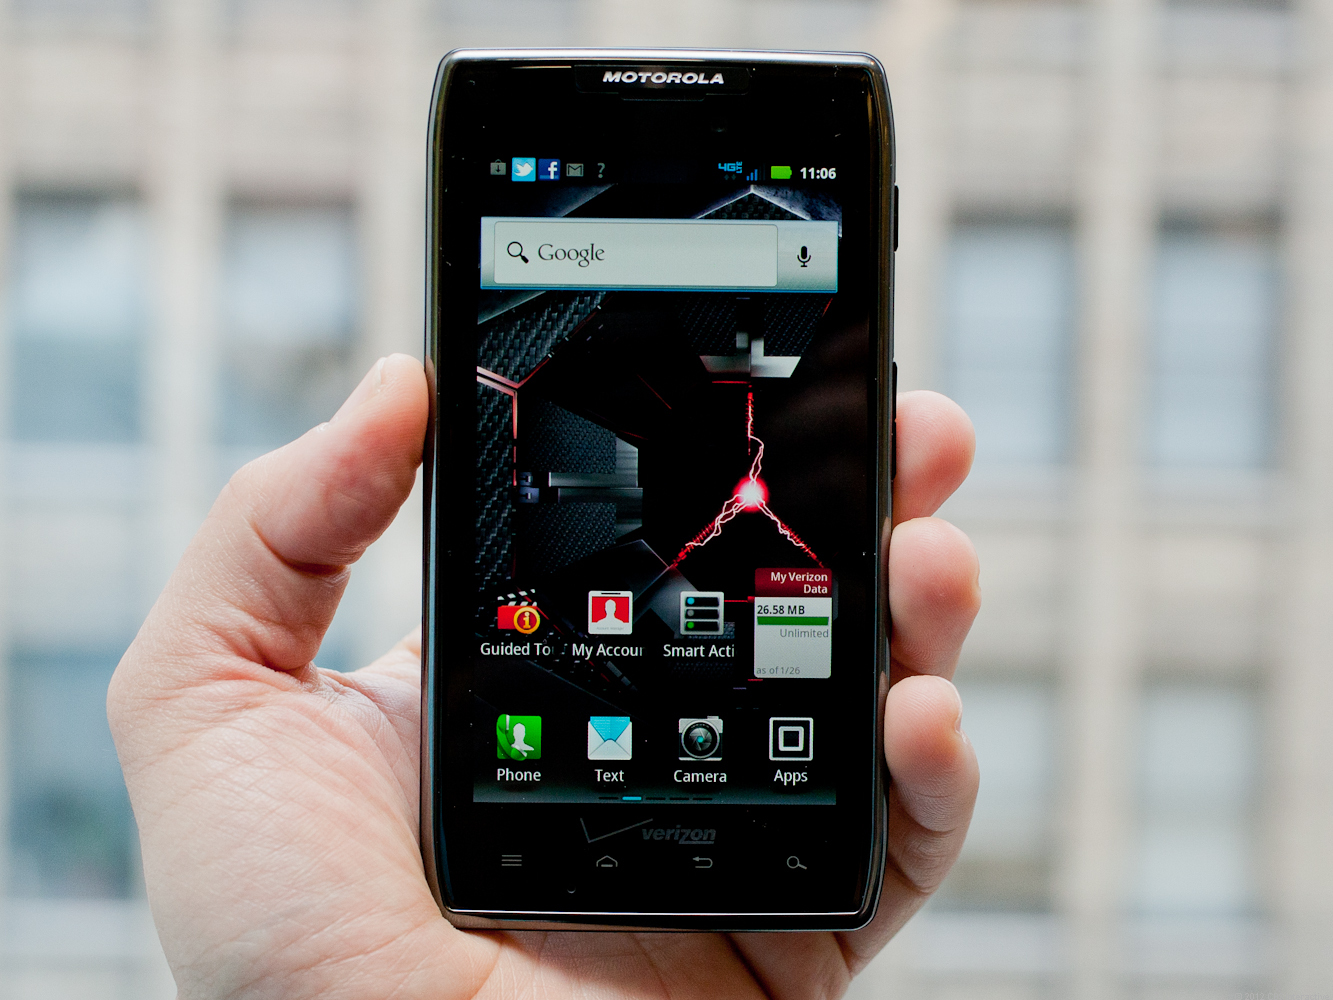 Motorola Droid Razr Maxx (Verizon Wireless)